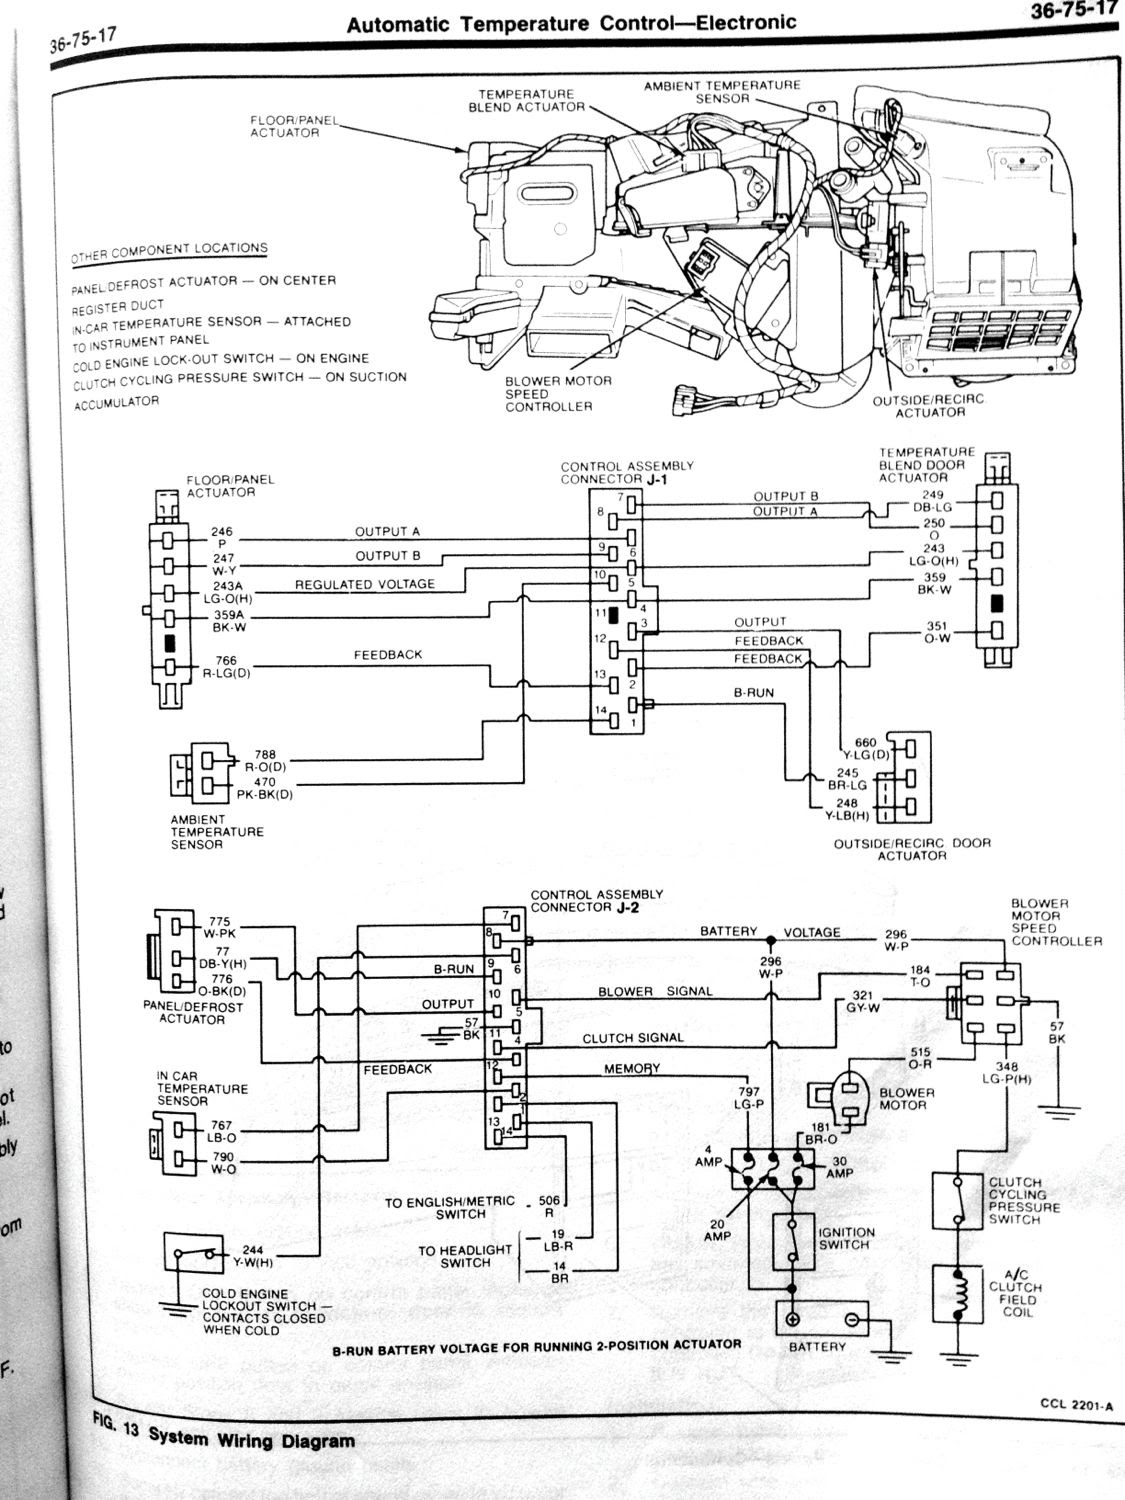 Diagram Lincoln Mark Vii Wiring Diagram Full Version Hd Quality Wiring Diagram Wiringklang2f Atuttasosta It